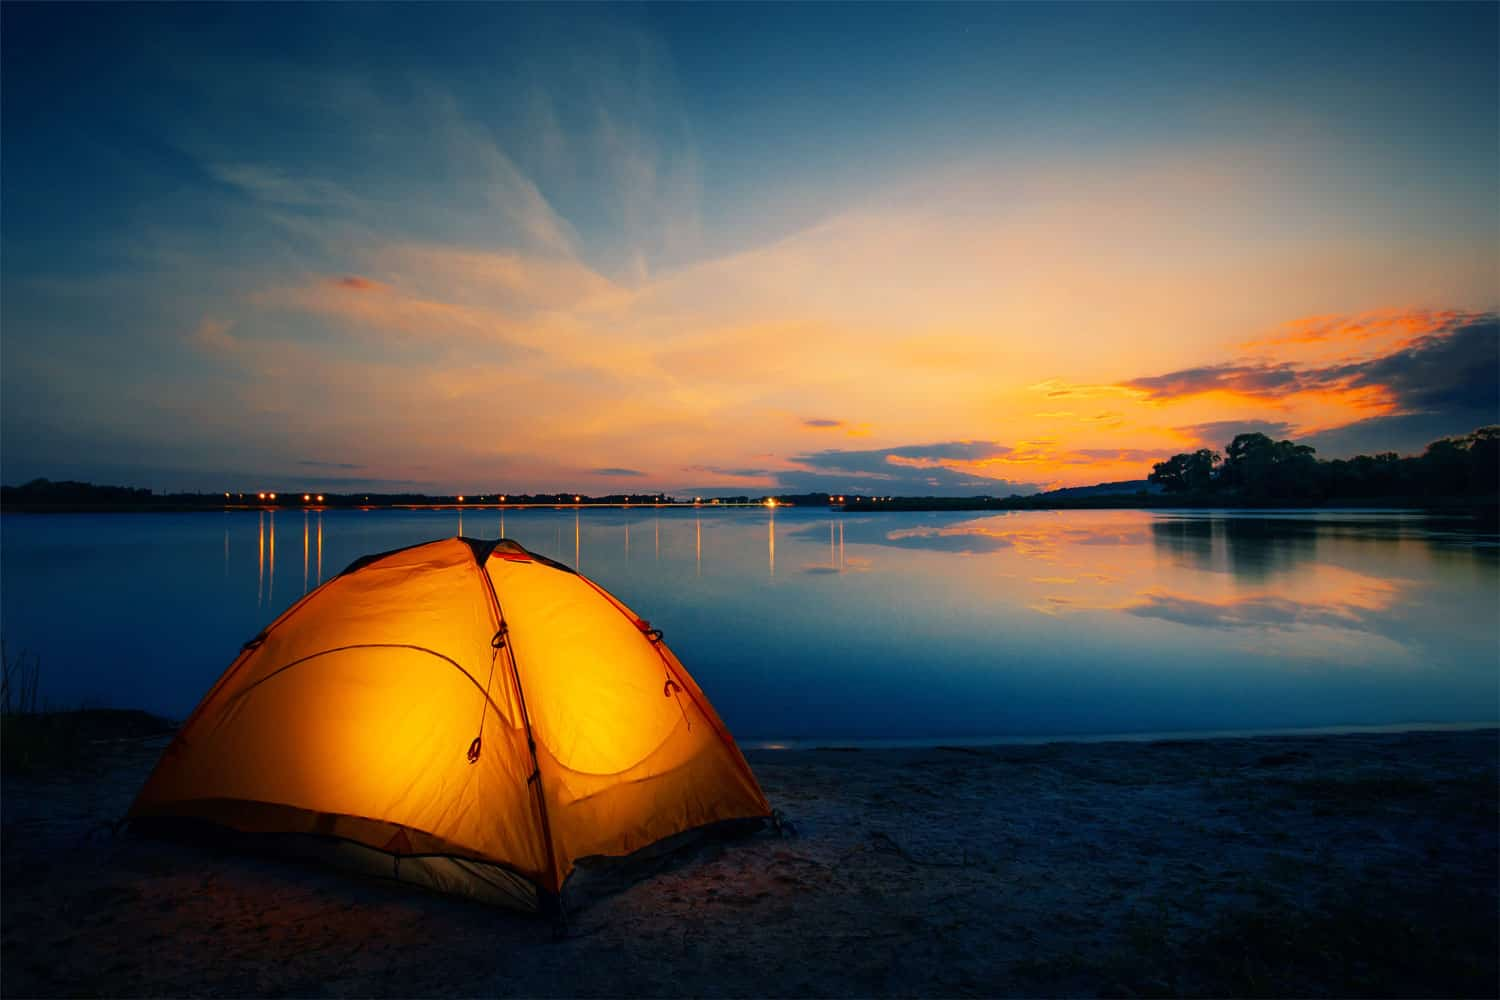 A four person orange colored tent set up near the lake